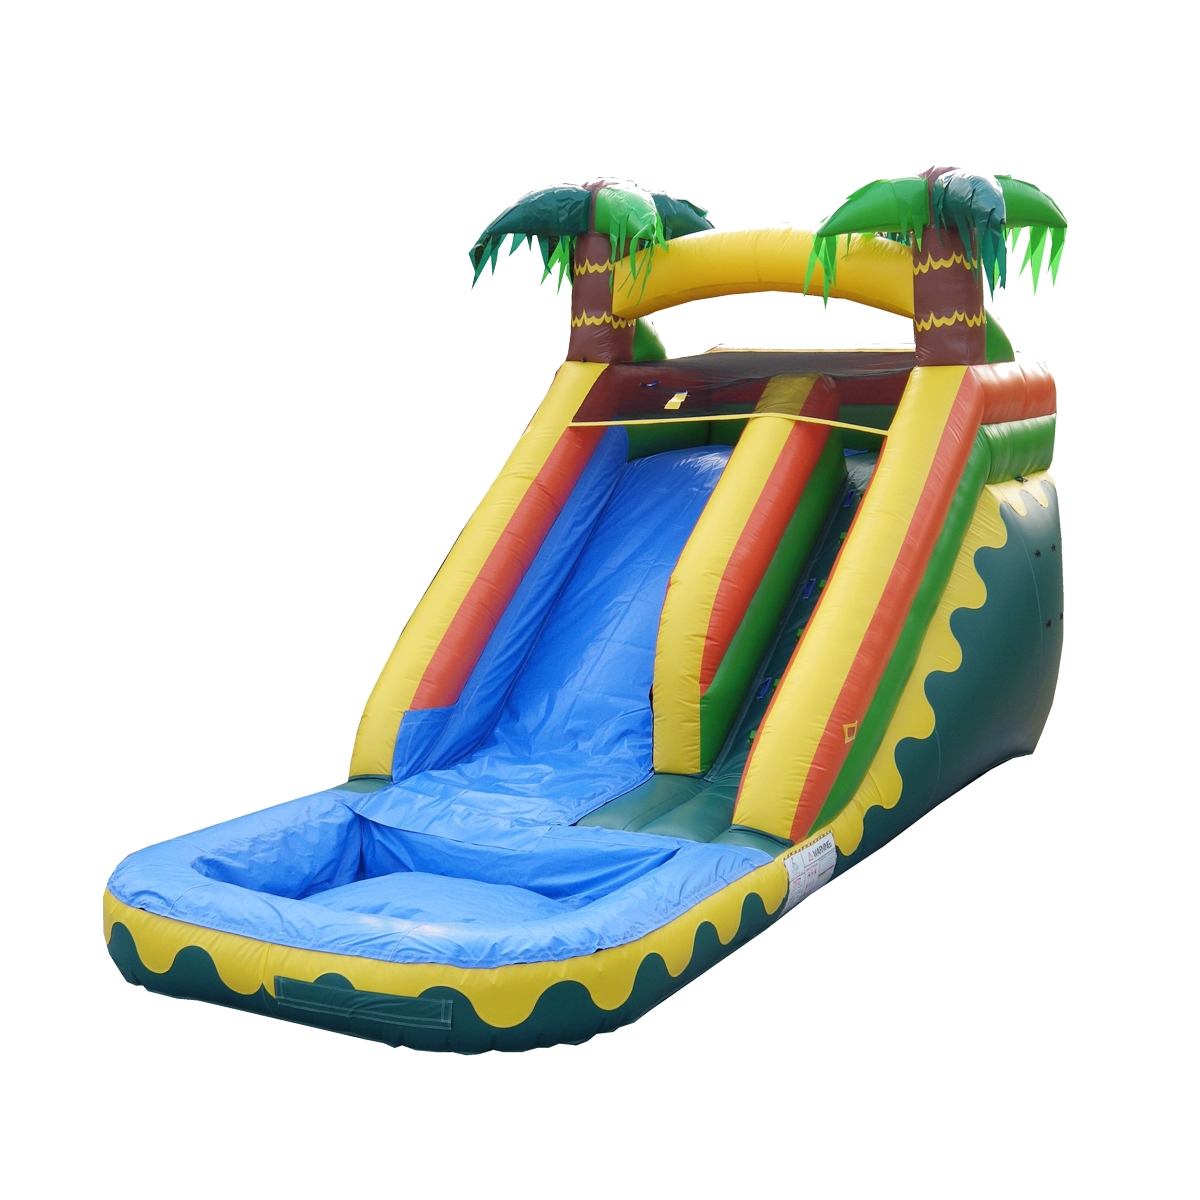 Inflatable Water Slide Tall: Jump For Joy Frisco